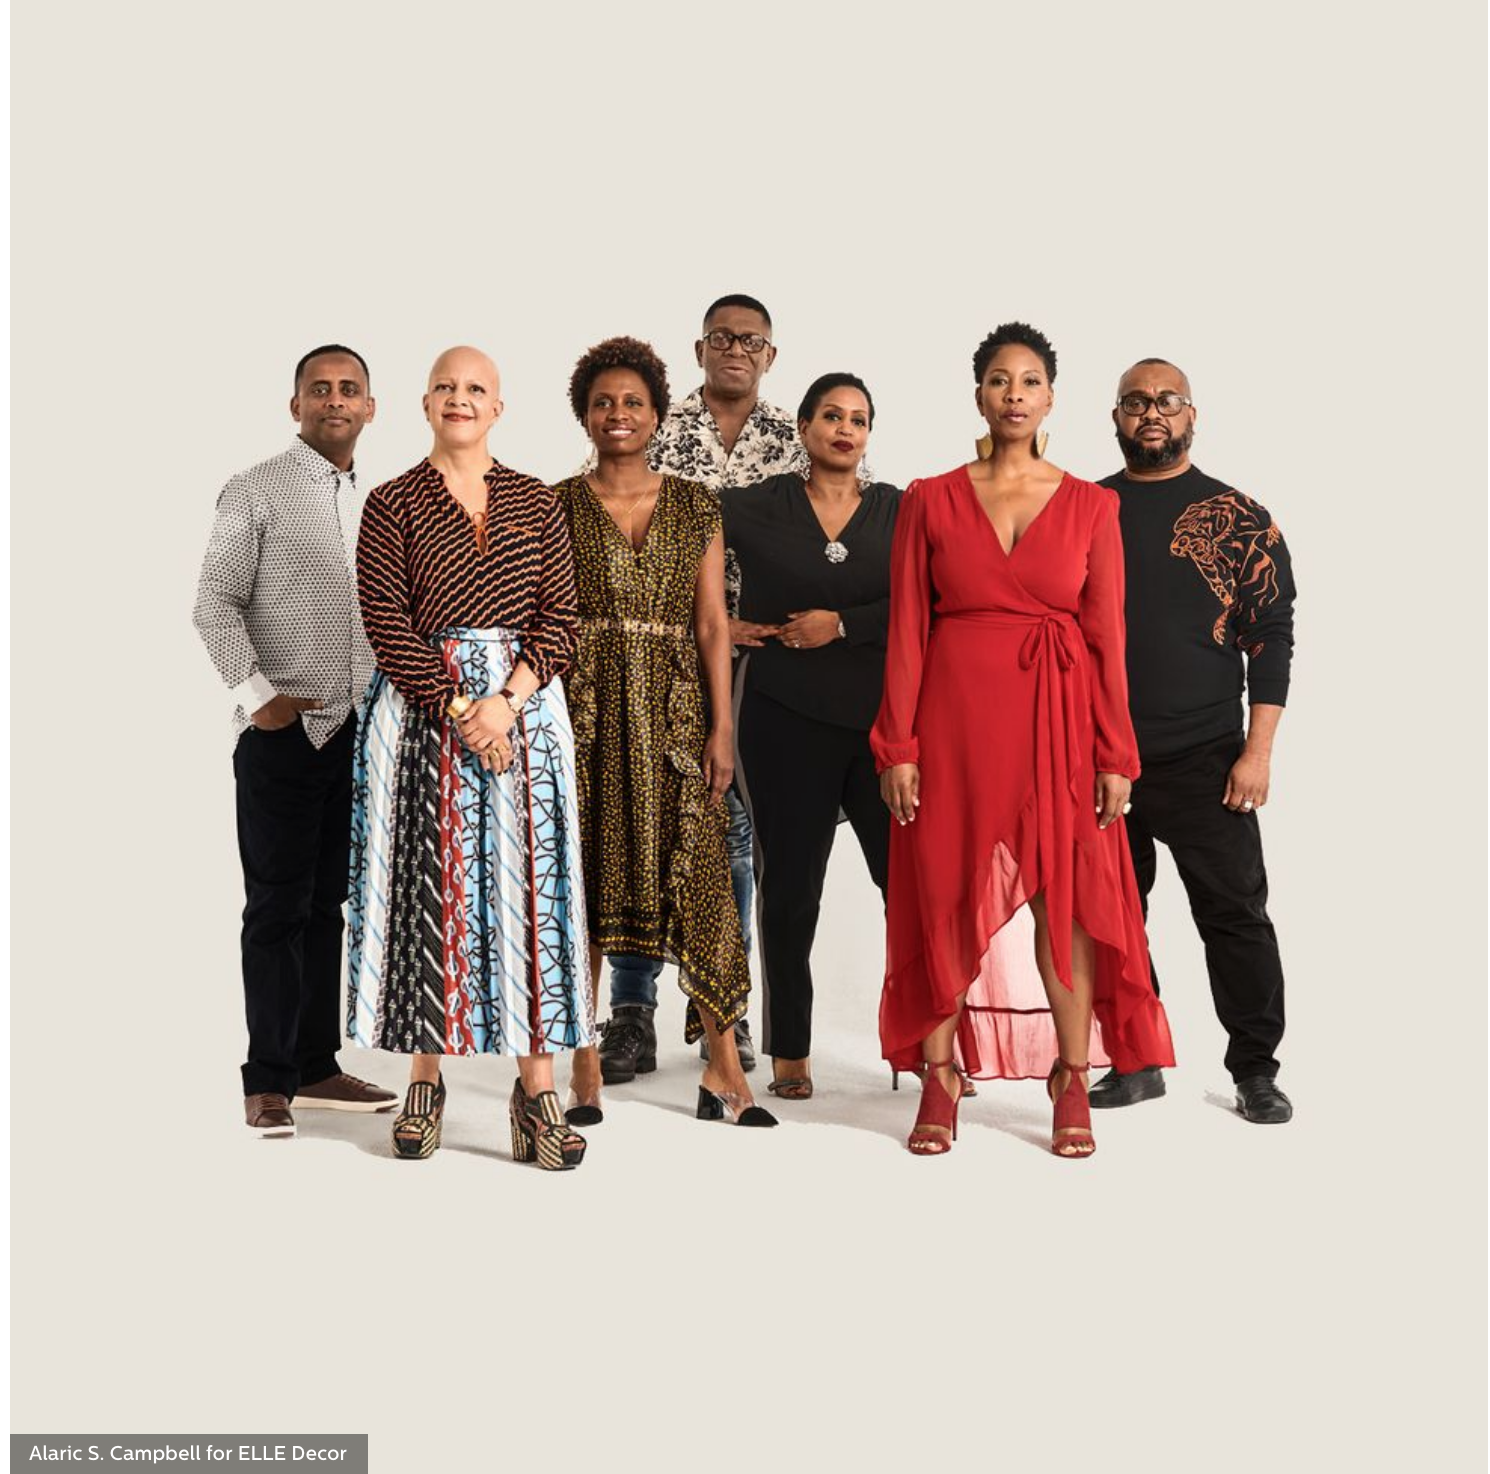 THE BLACK ARTISTS + DESIGNERS GUILD IS A CREATIVE FORCE SHAKING UP THE DESIGN WORLD - A look at a new directory that shines a light on some of the industry's top talent.WRITTEN & PRODUCED BY CHARLES CURKINMAR 18, 2019